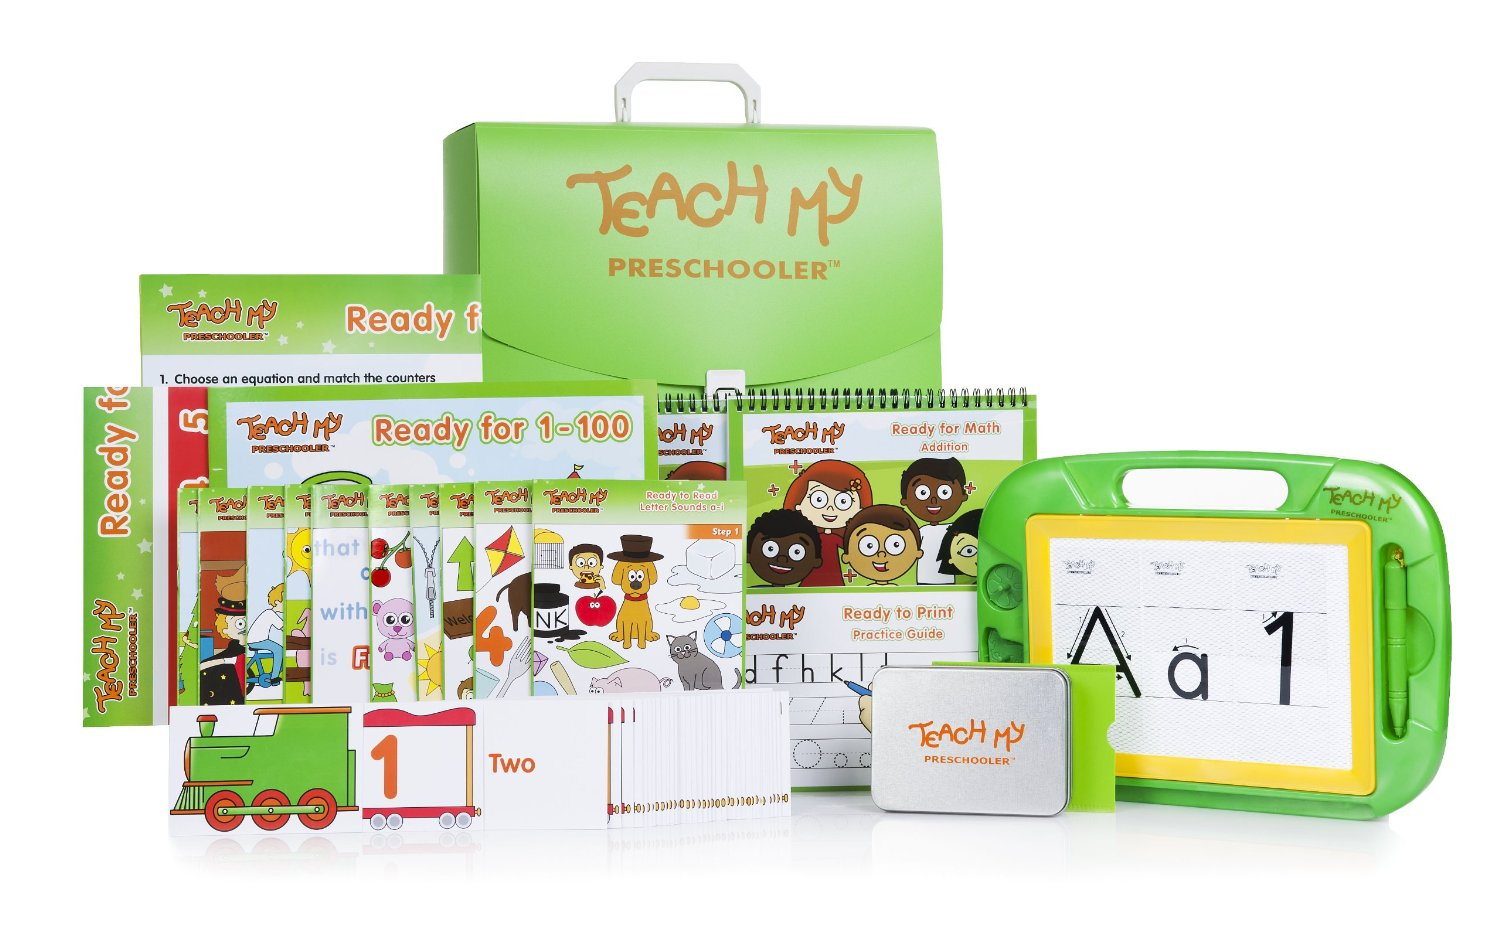 teachmypreschooler